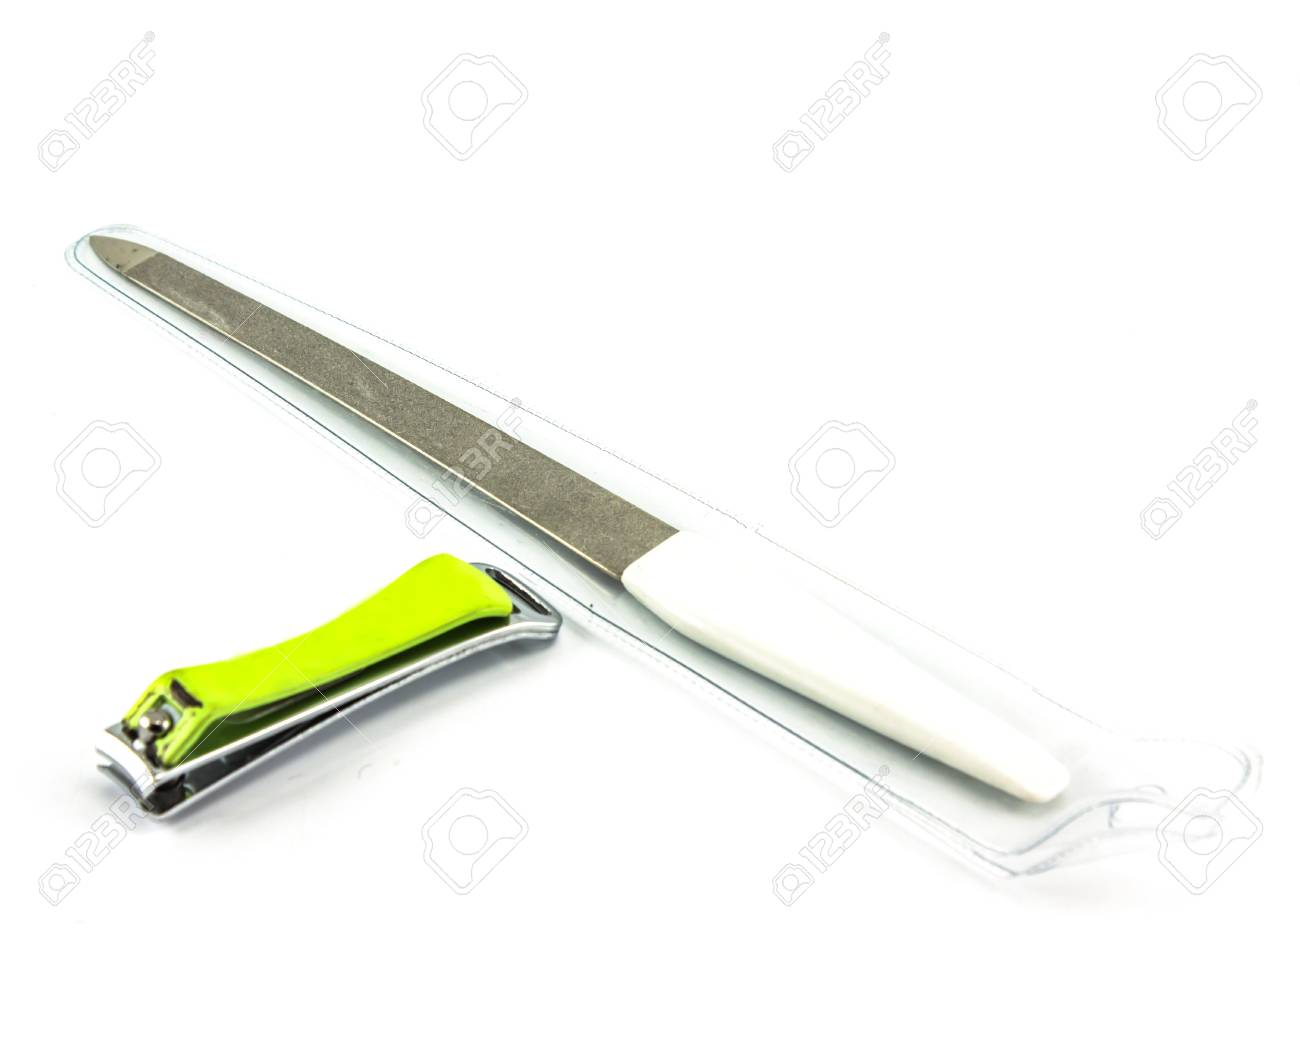 nail clippers on white background Stock Photo - 15432201